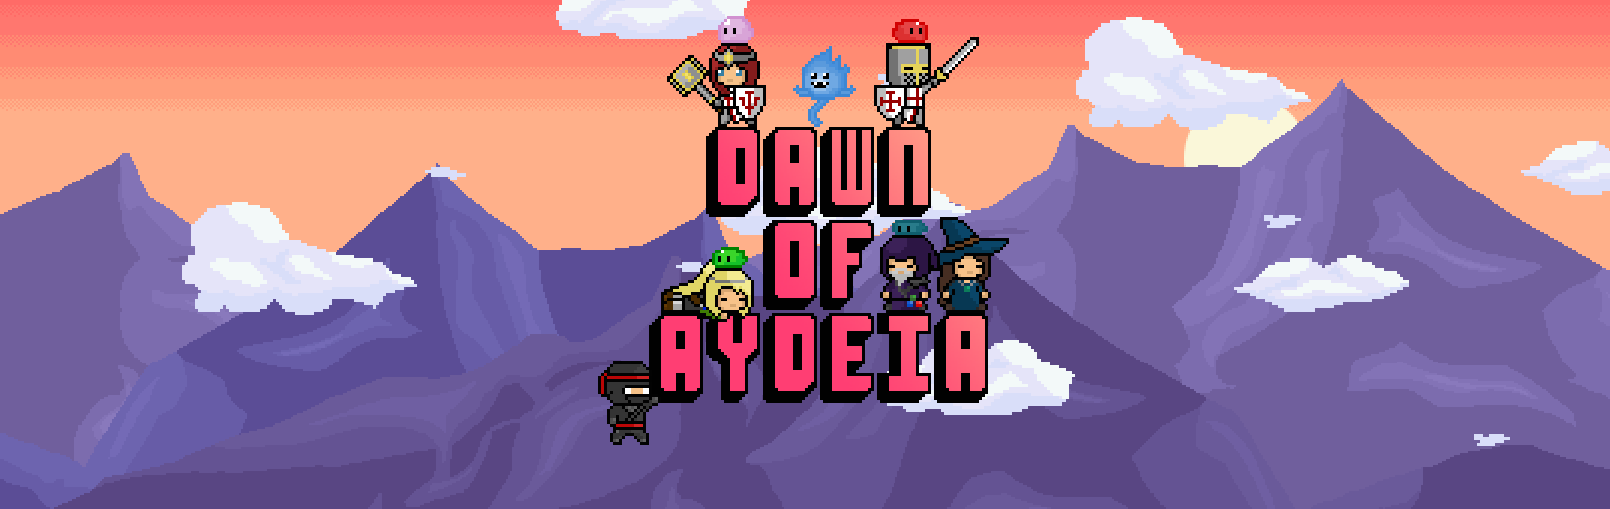 Dawn of Aydeia (Demo)